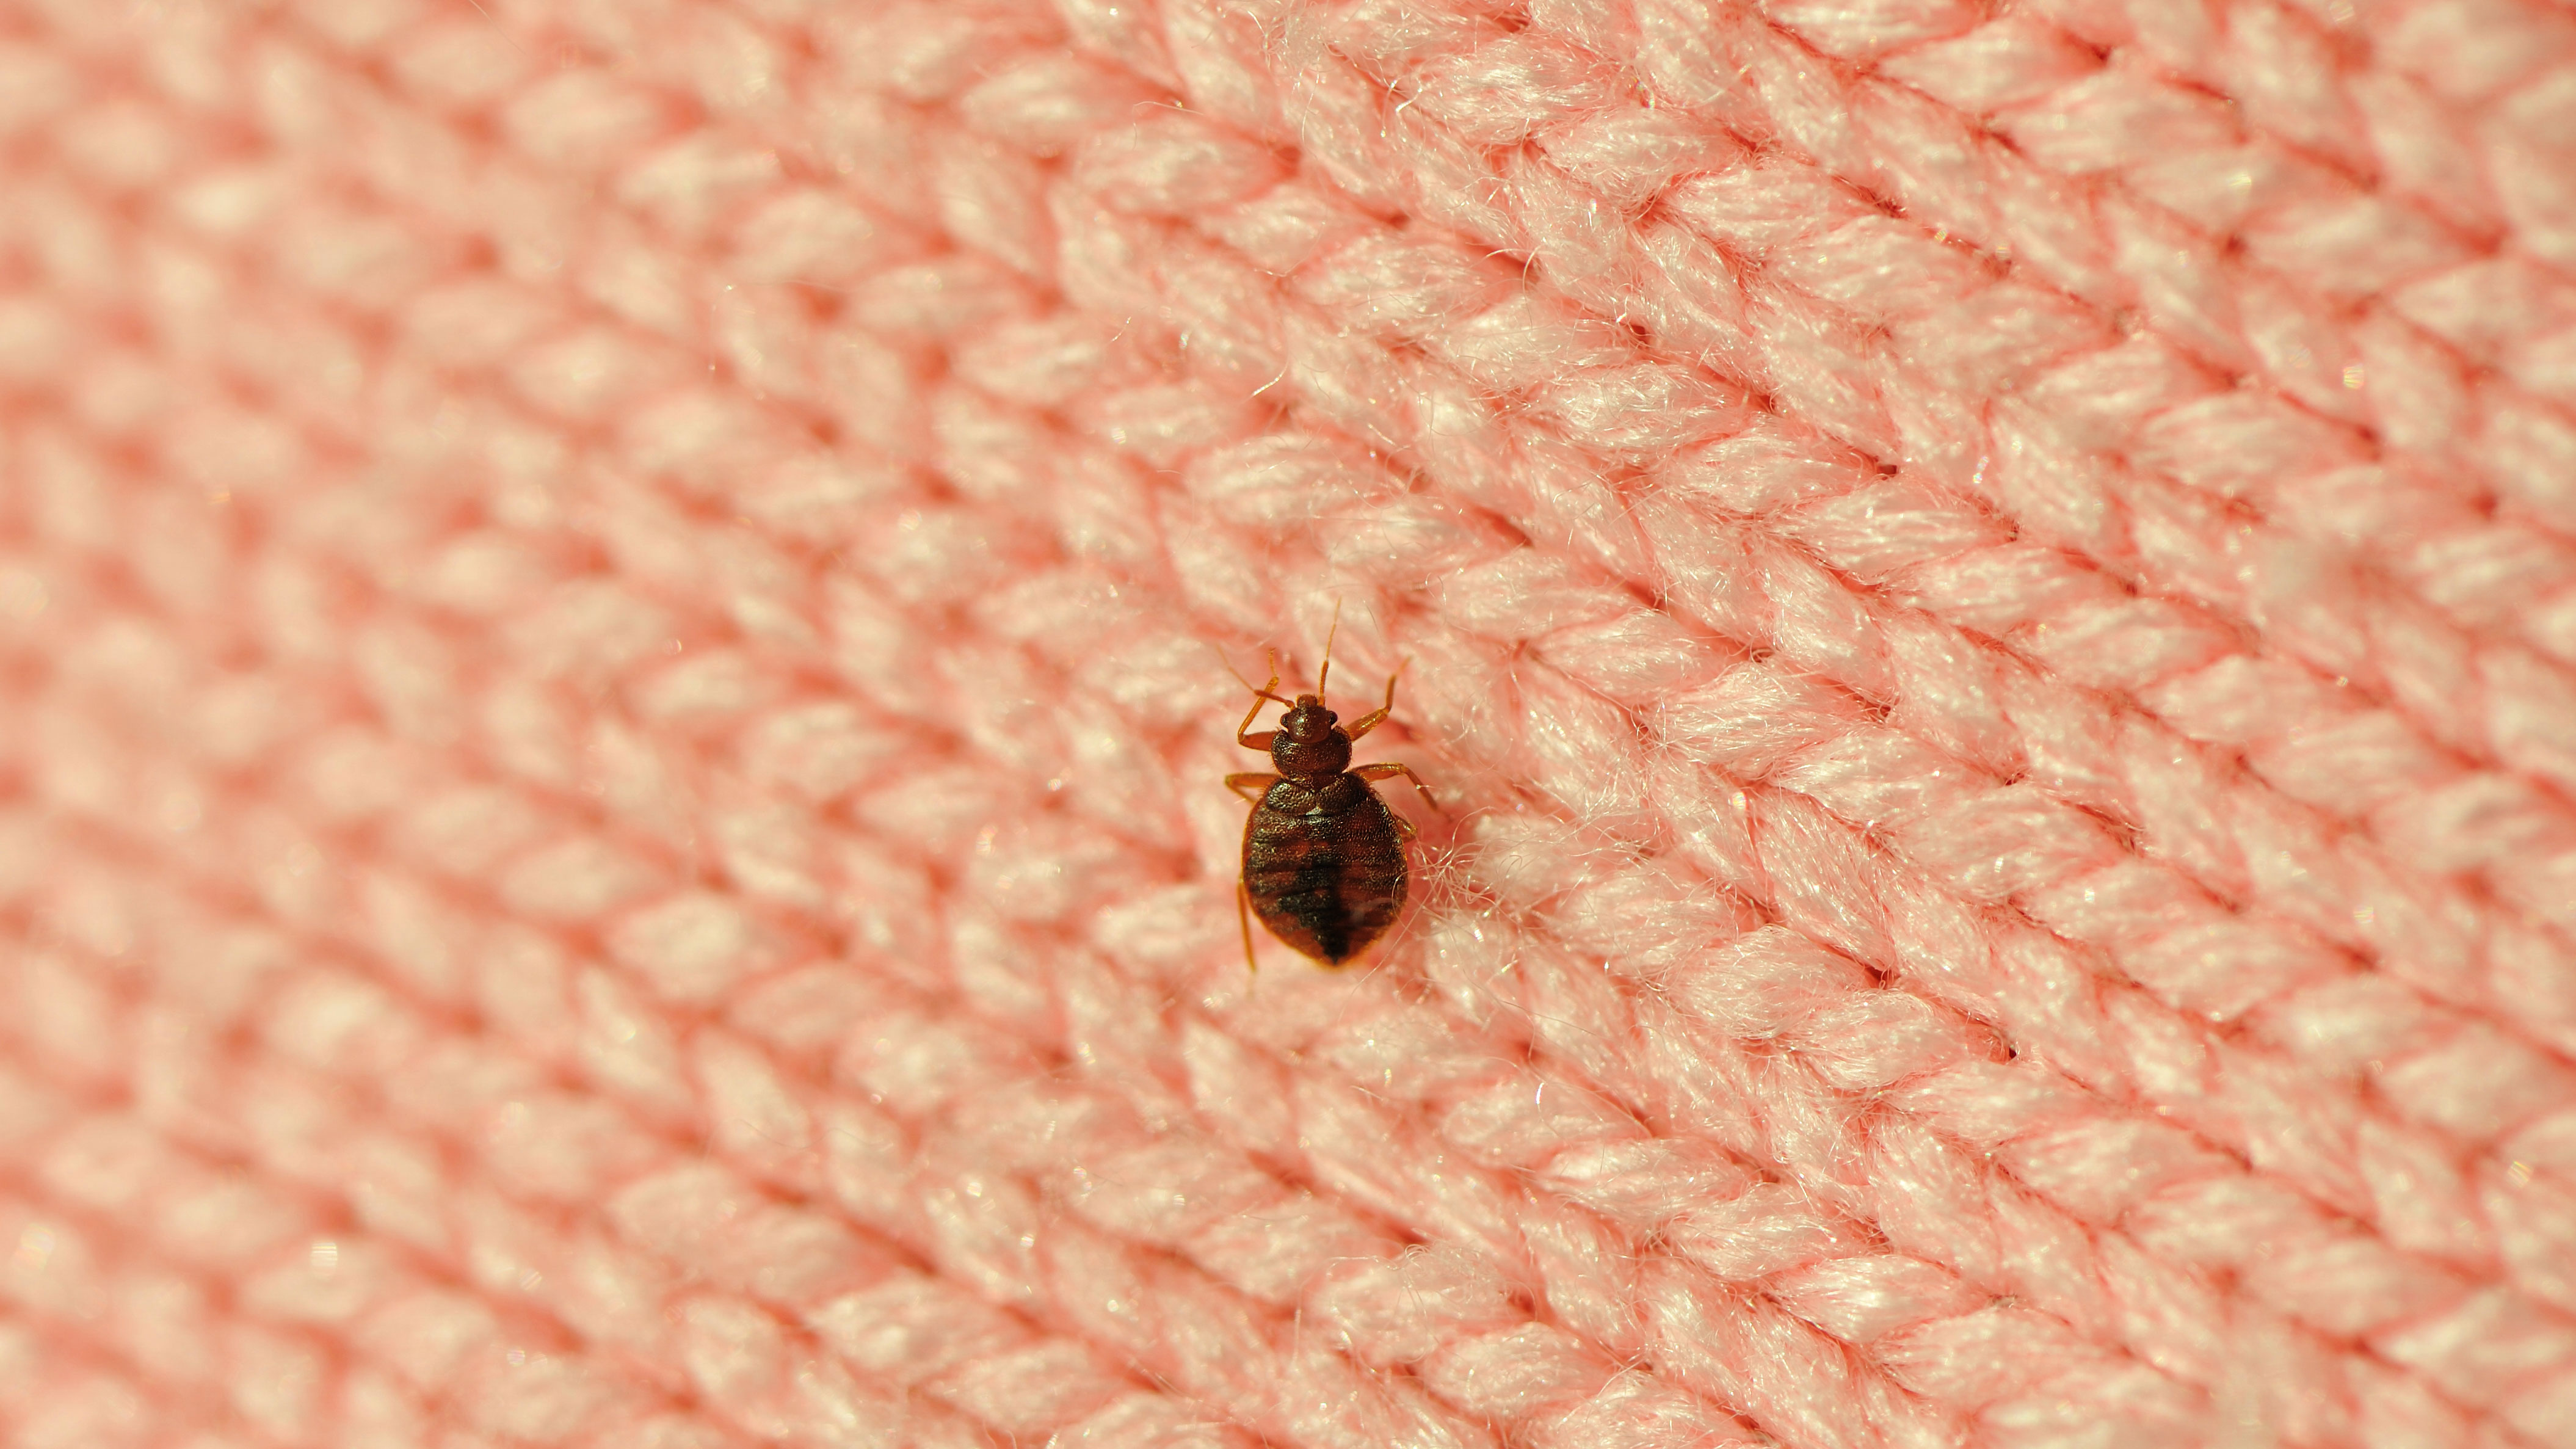 How To Get Rid Of Bed Bugs Fast Using The Best Products And Home Remedies Real Homes